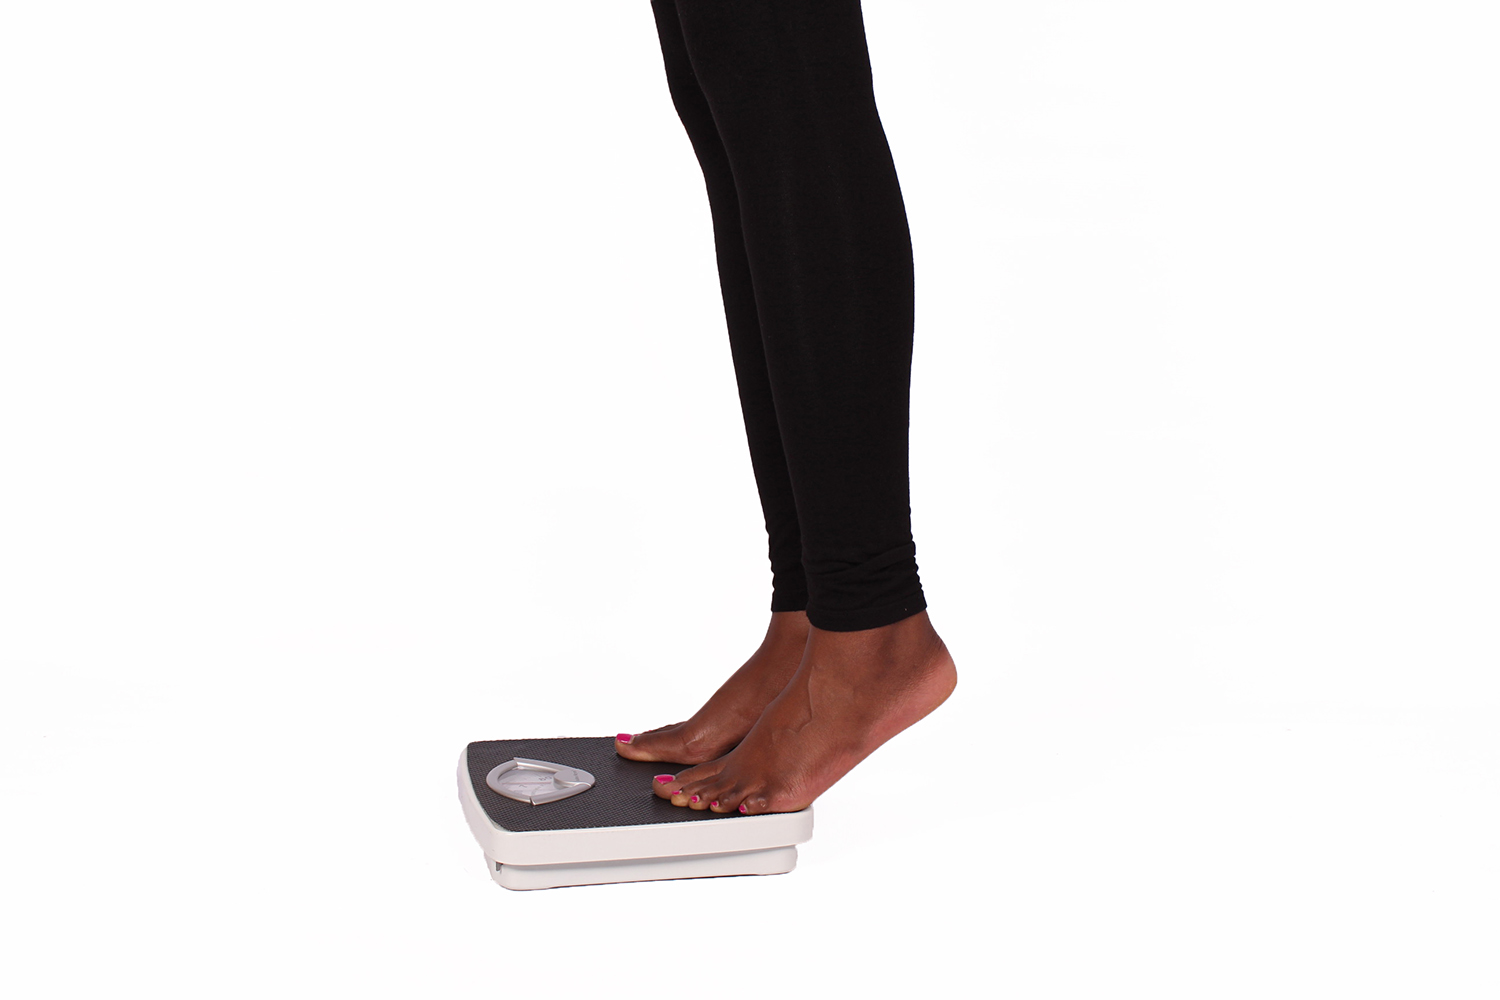 Legs of Woman Stepping on Weigh Scale to Measure Weight